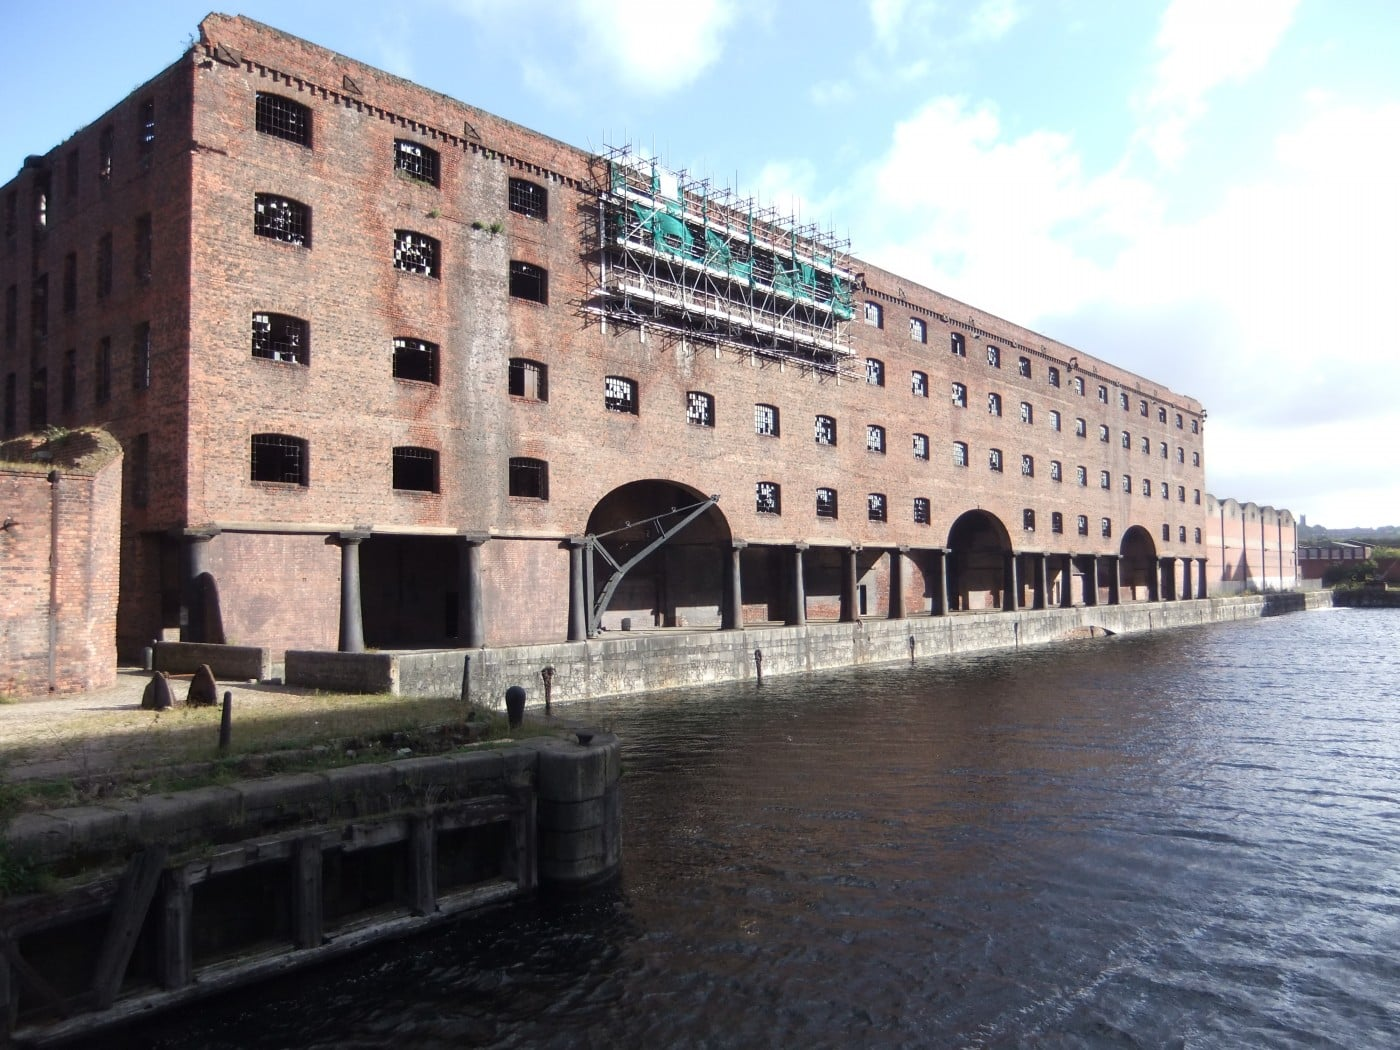 Stanley_Dock,_Liverpool_(12)